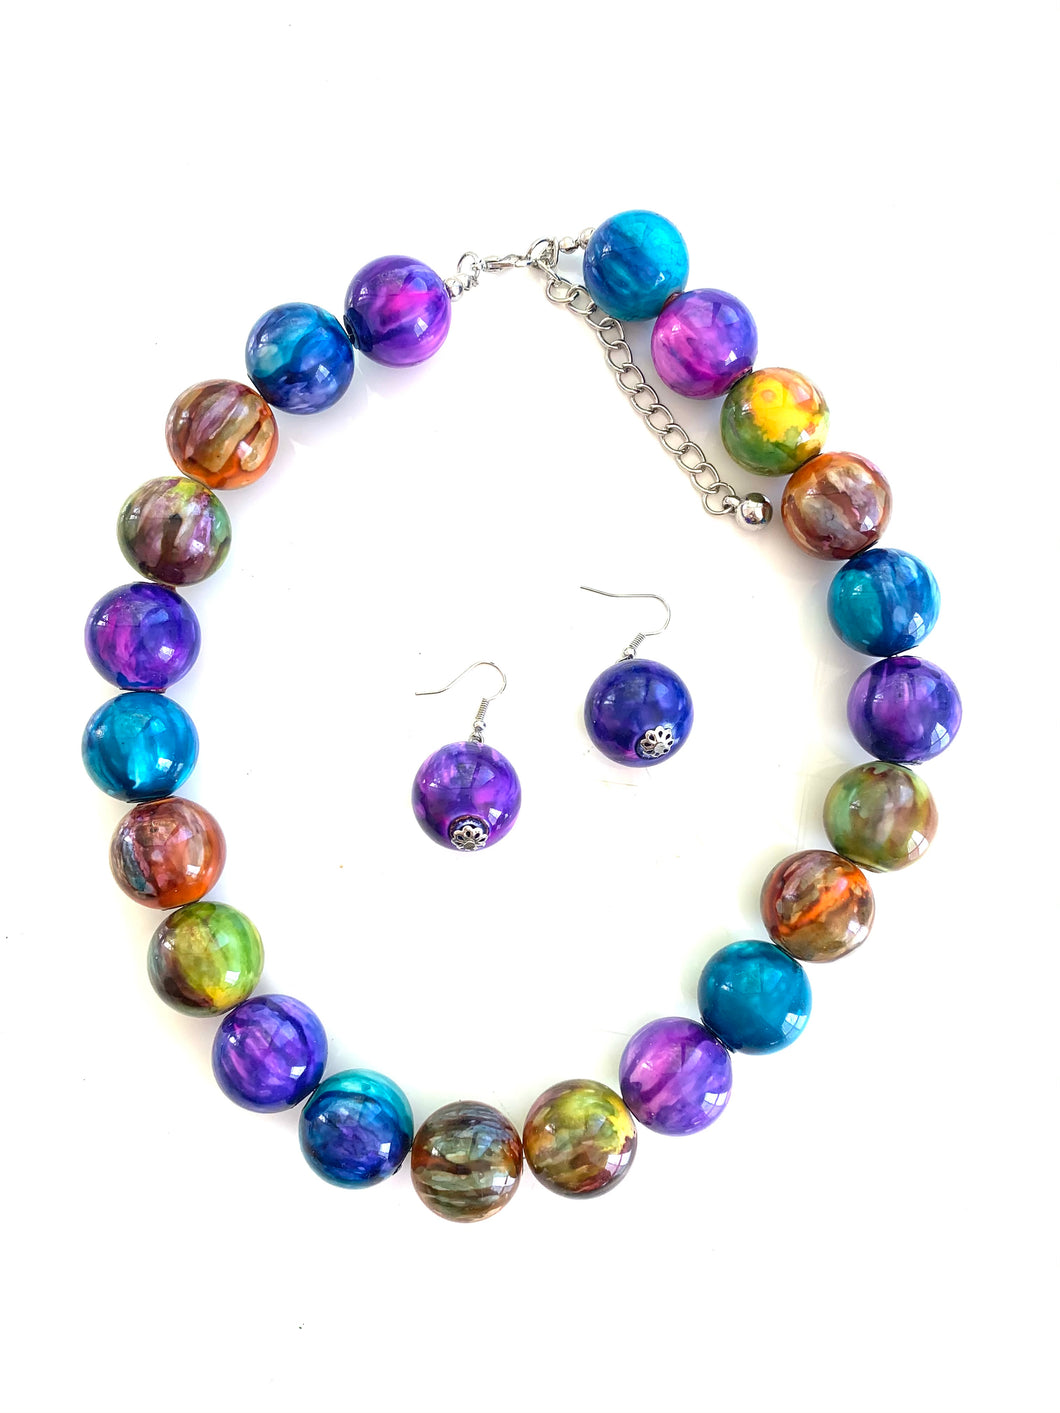 Jumbo Artsy Beaded Necklace and Earring Set